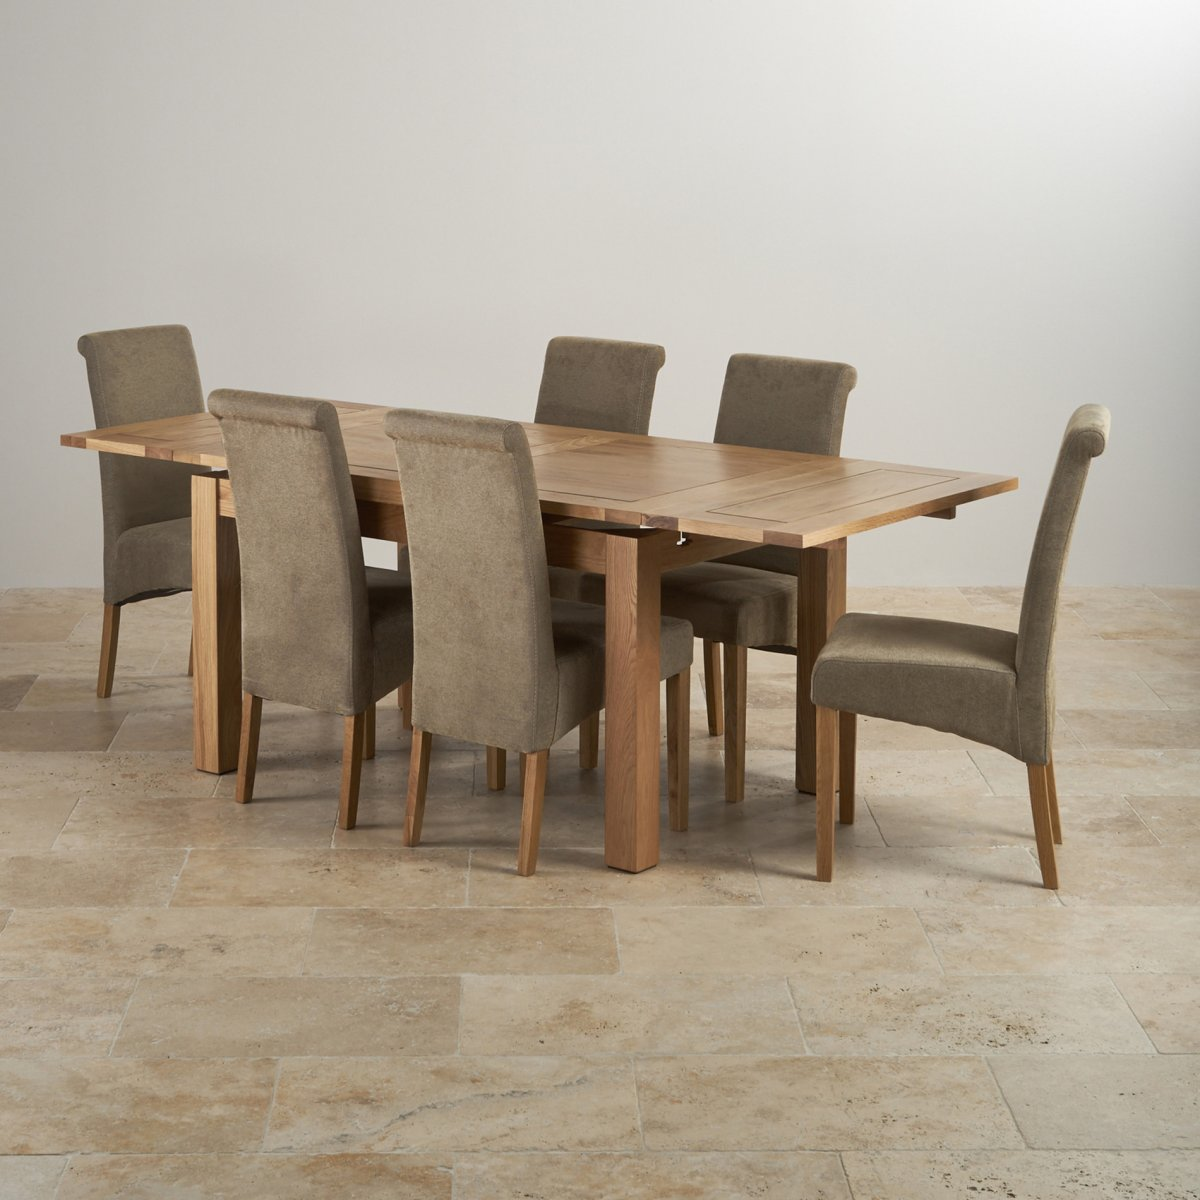 Dorset Oak 4ft 7quot Dining Table with 6 Sage Chairs : dorset natural solid oak dining set 4ft 7 extending table with 6 scroll back plain sage fabric chairs 56f52587e4243cd92d6237e5db6b4025461a3118c53d0 from www.oakfurnitureland.co.uk size 1200 x 1200 jpeg 152kB